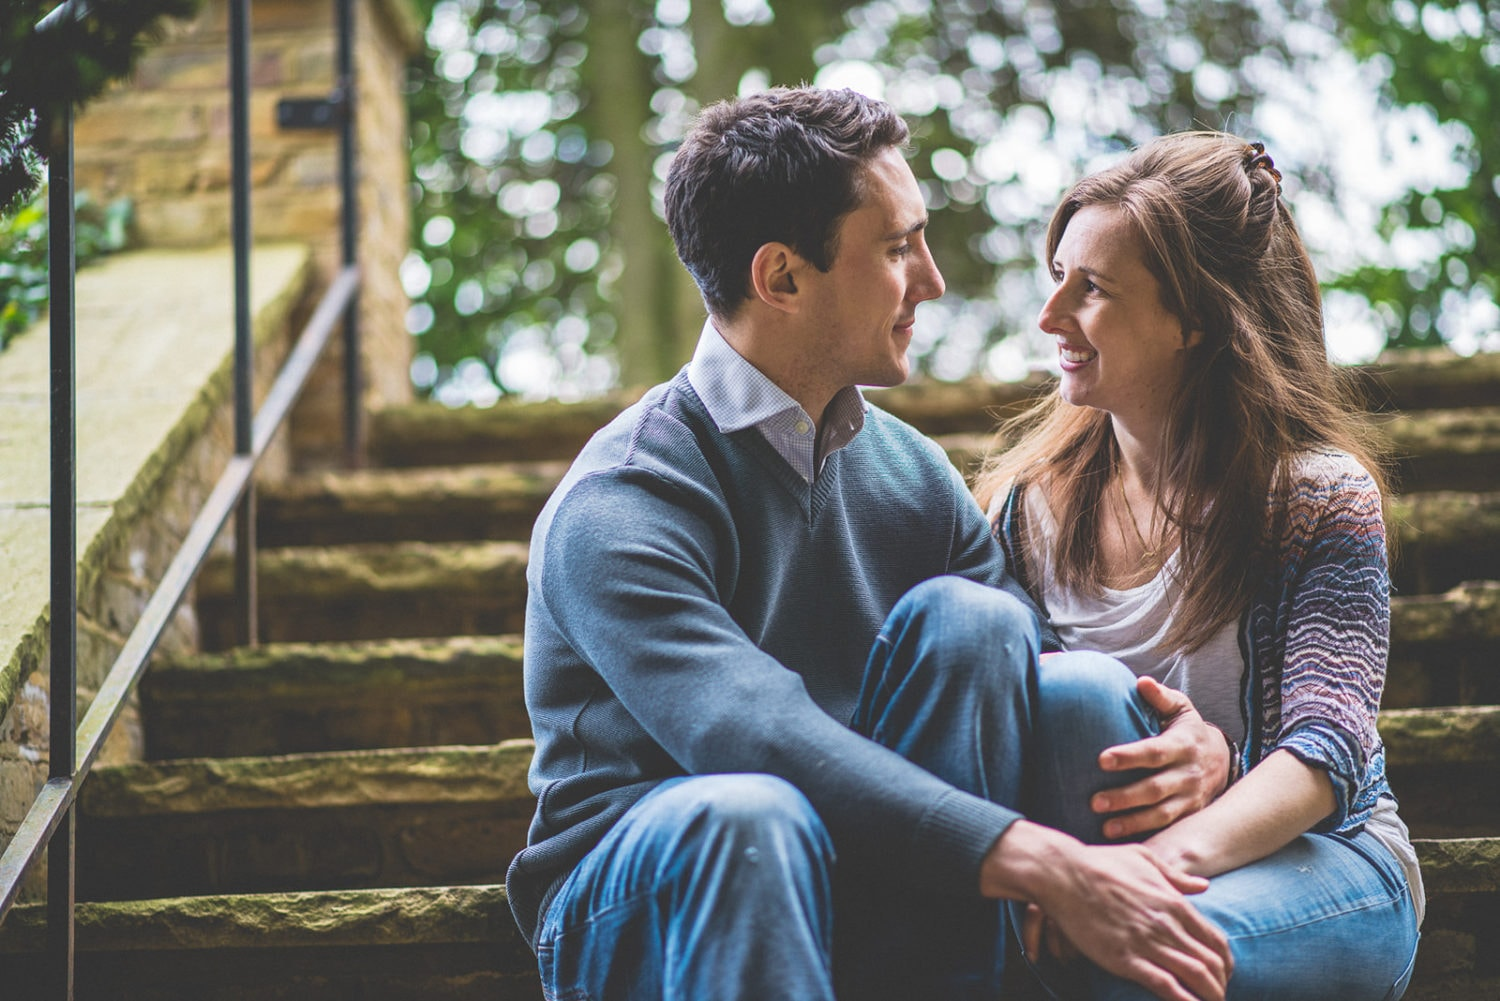 young engaged couple sit on steps and look at each other